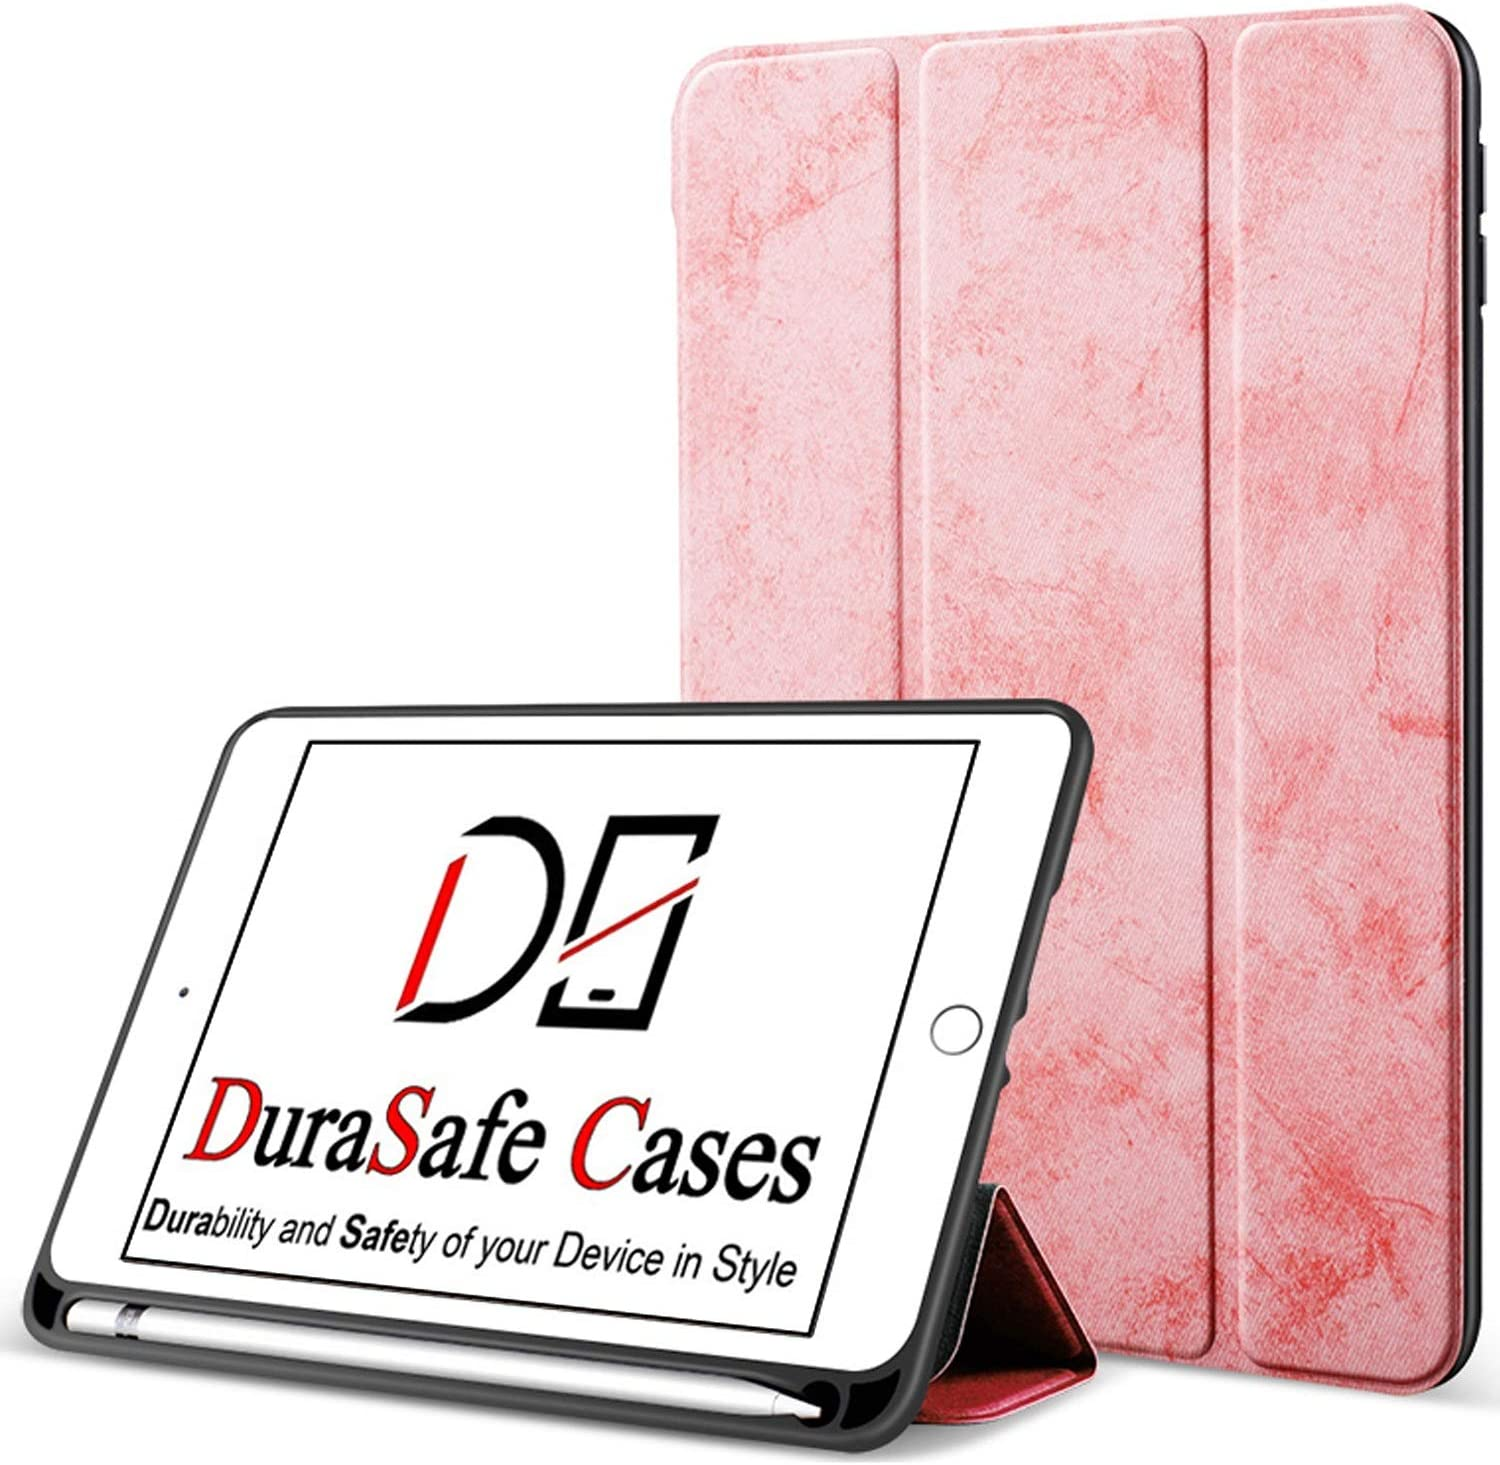 "DuraSafe Cases For iPad PRO / Air - 10.5"" Protective Durable Shock Proof Pencil Holder Cover - Pink"